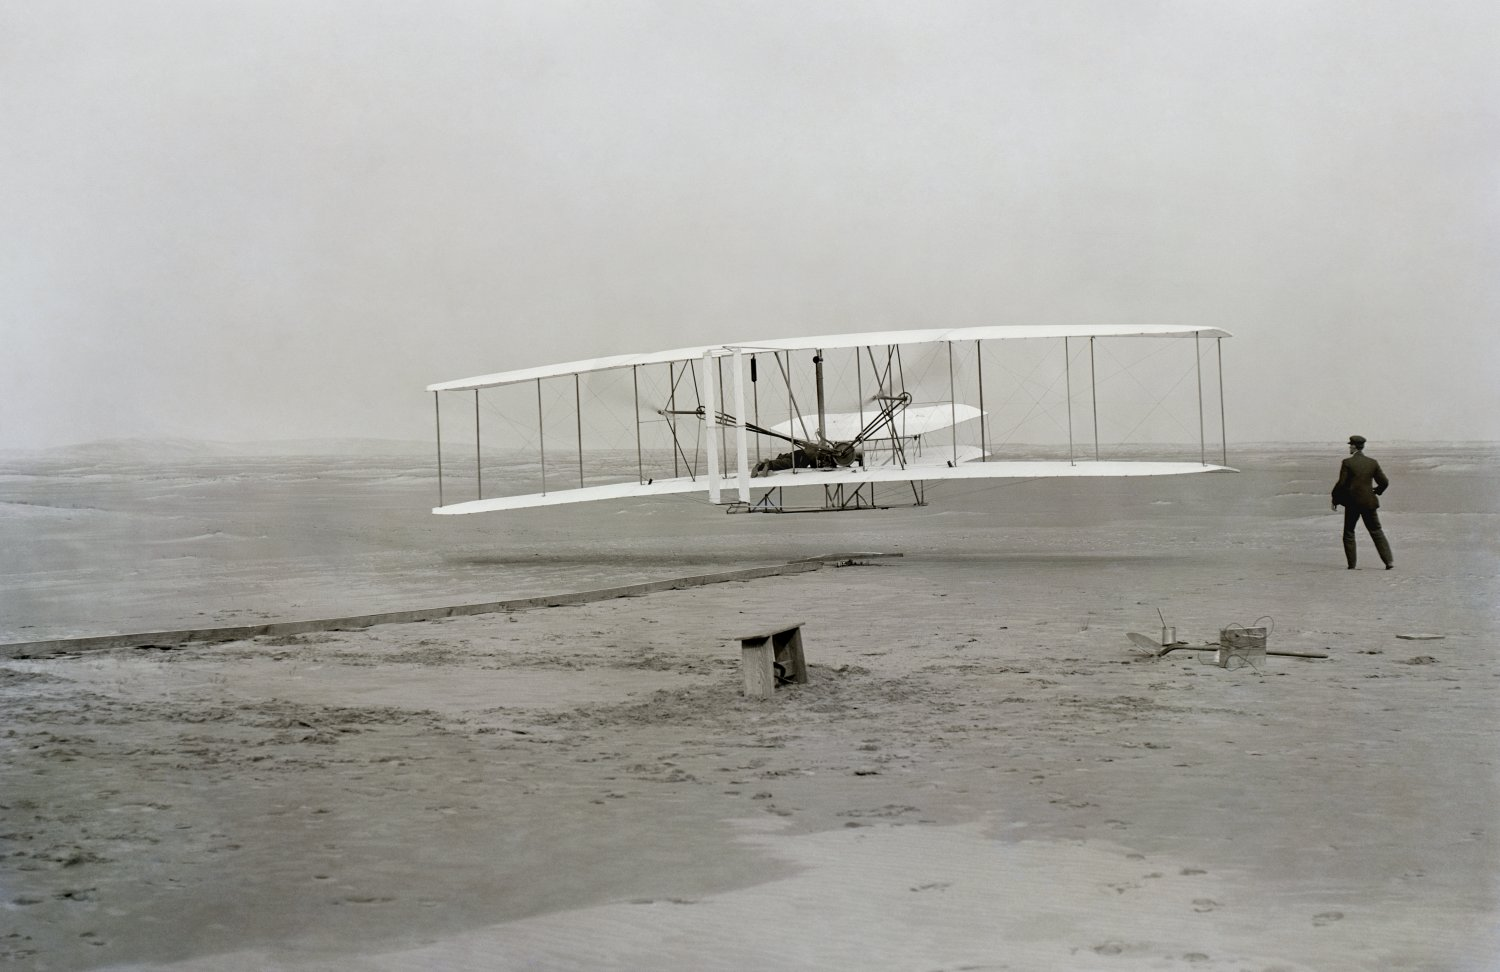 First flight of the Wright Flyer